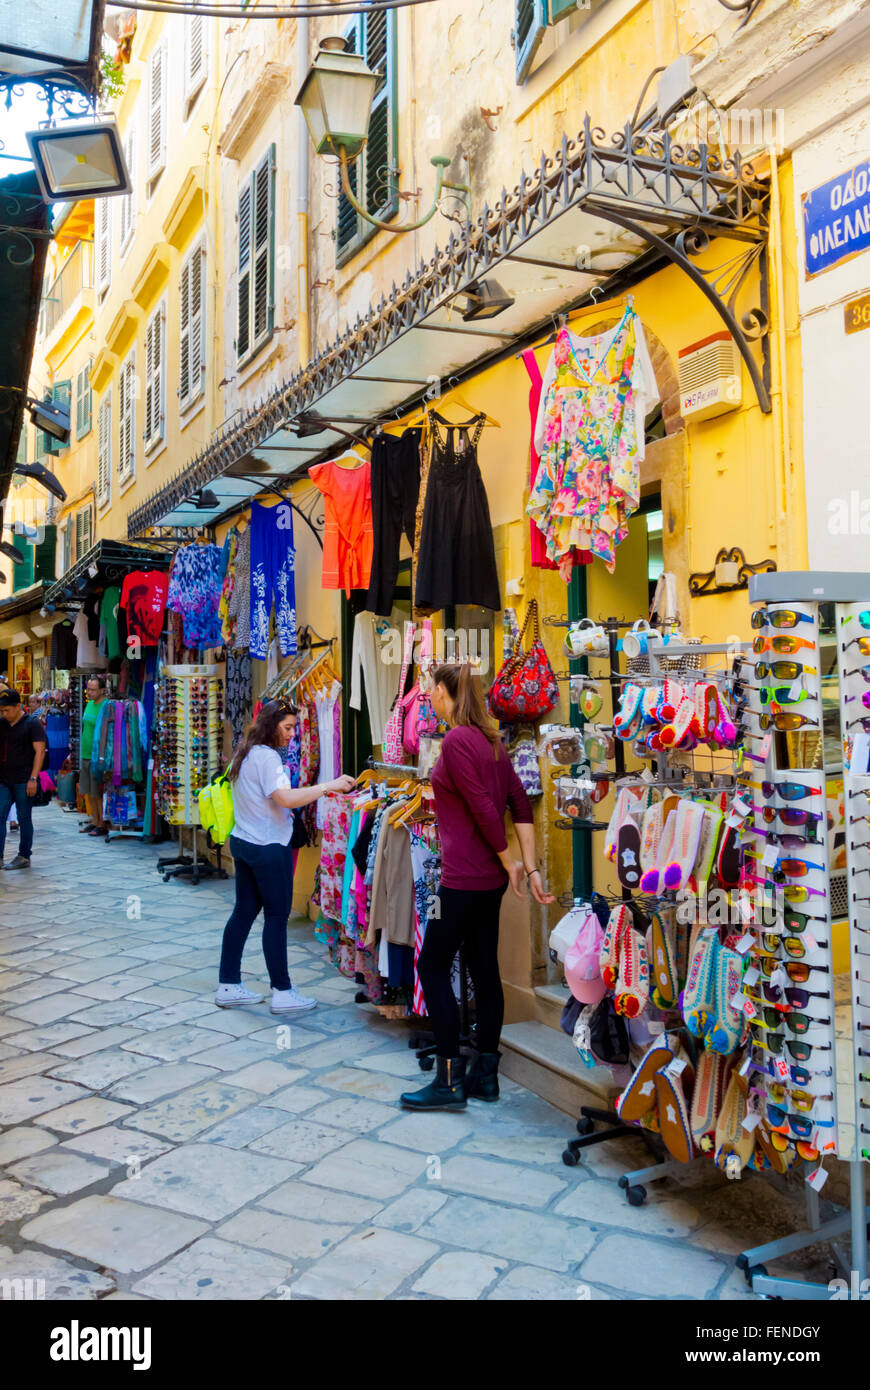 Shopping street for tourists, Old town, Corfu , Ionian islands, Greece - Stock Image